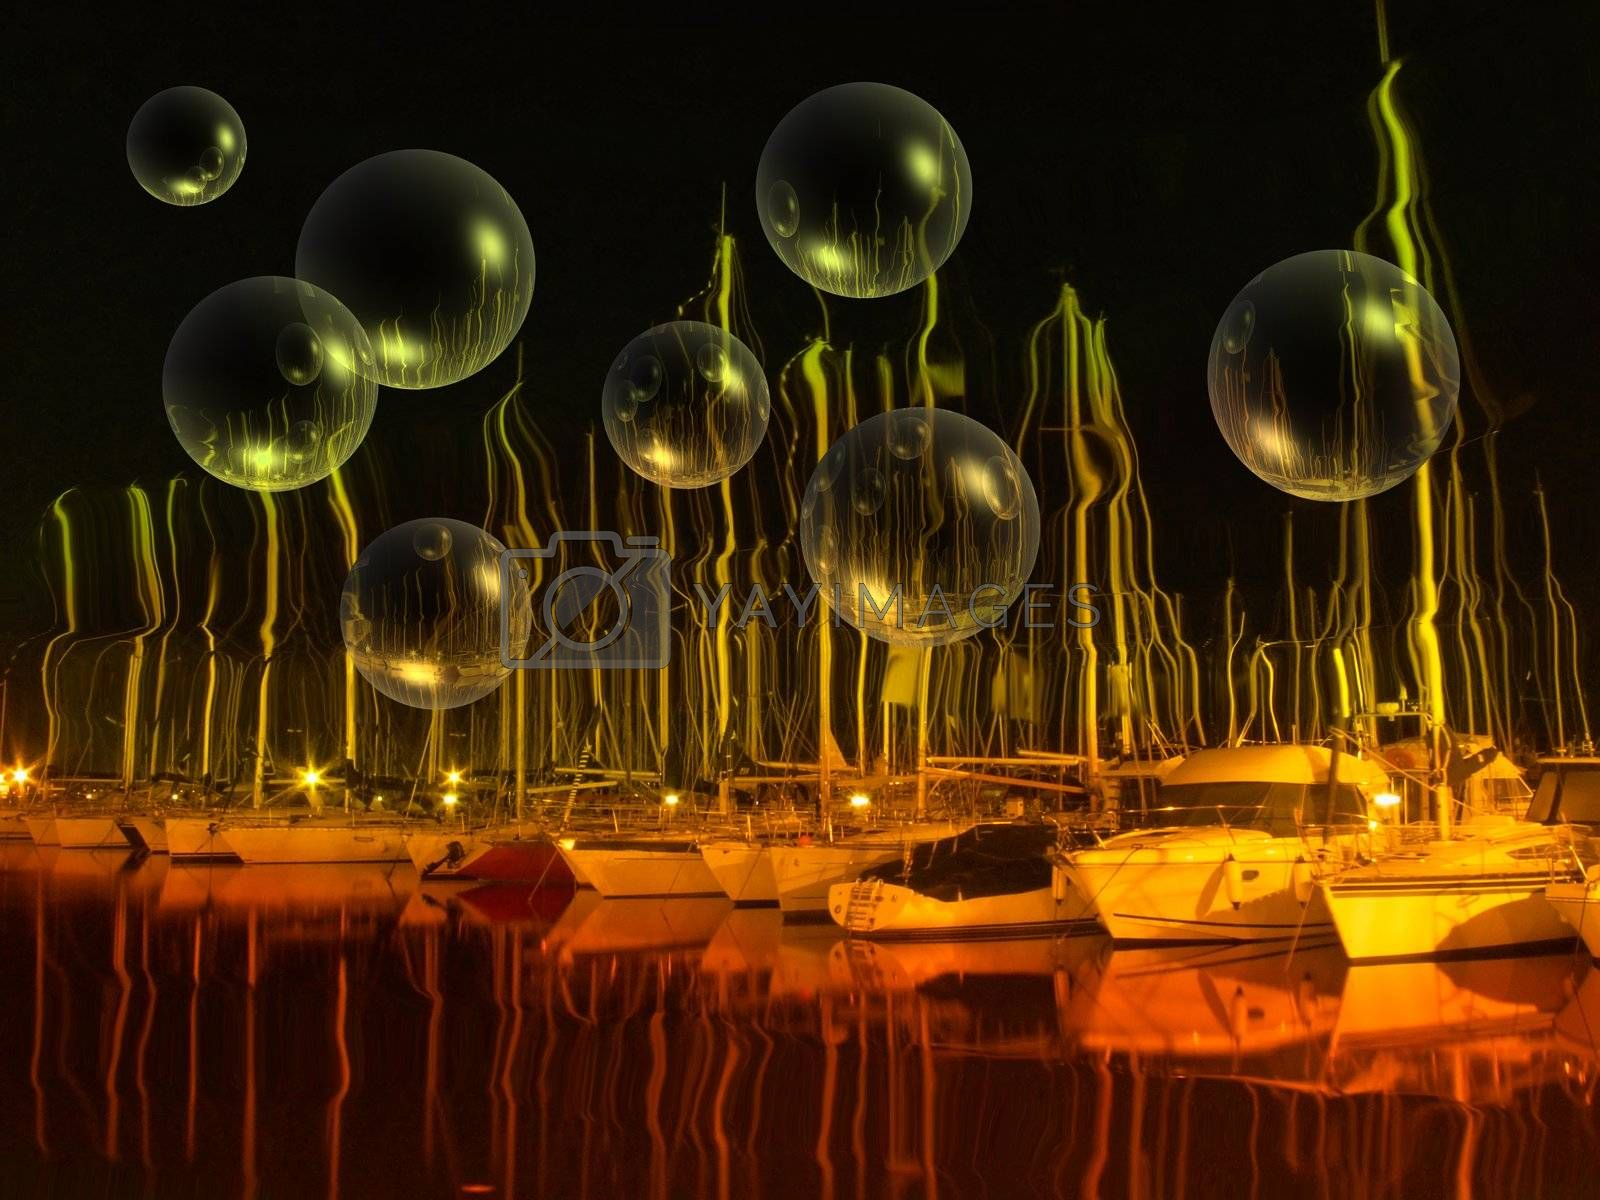 an enhanced photo of boats at harbor with bubbles